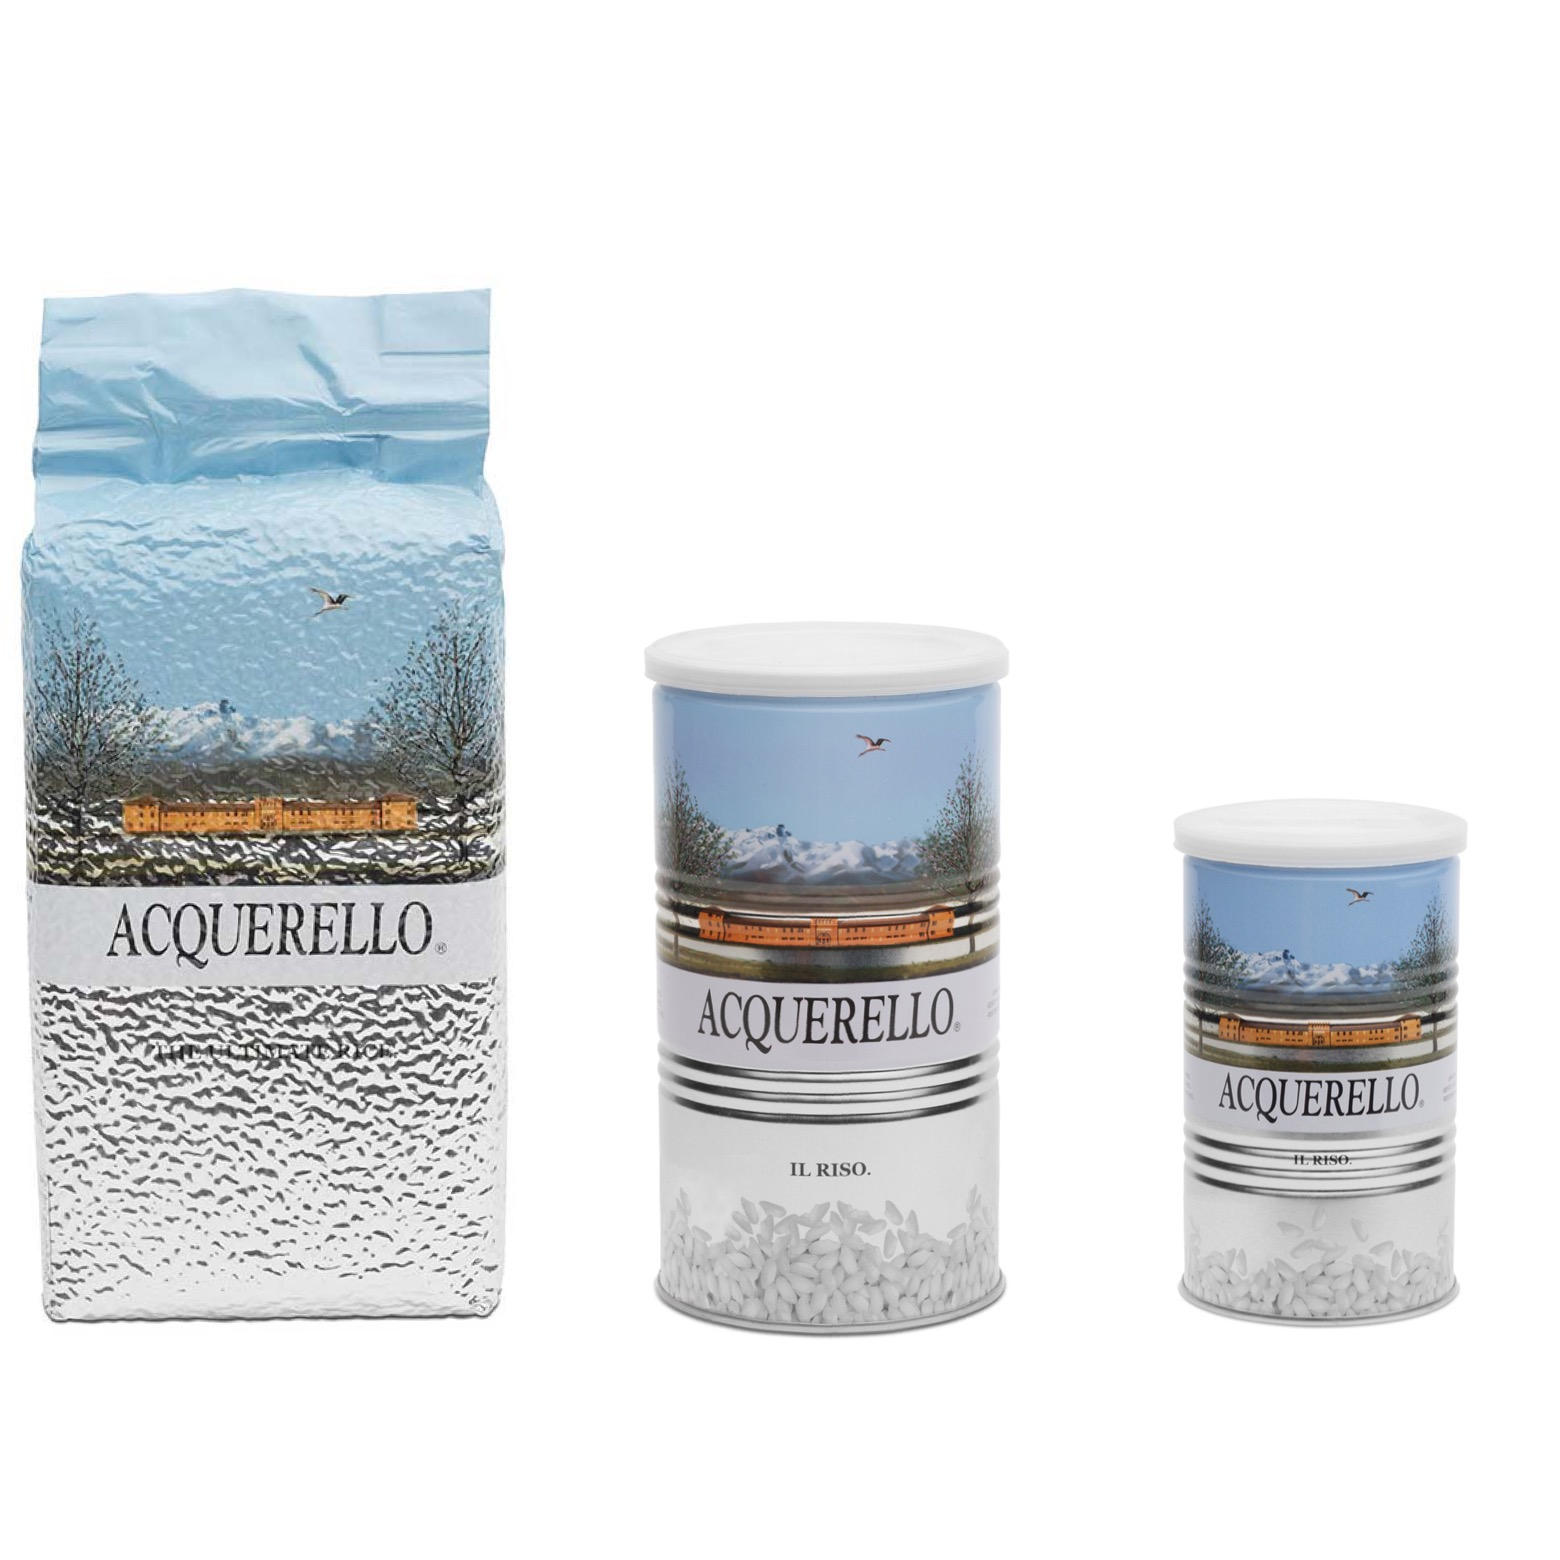 Acquerello -  Carnaroli Rice